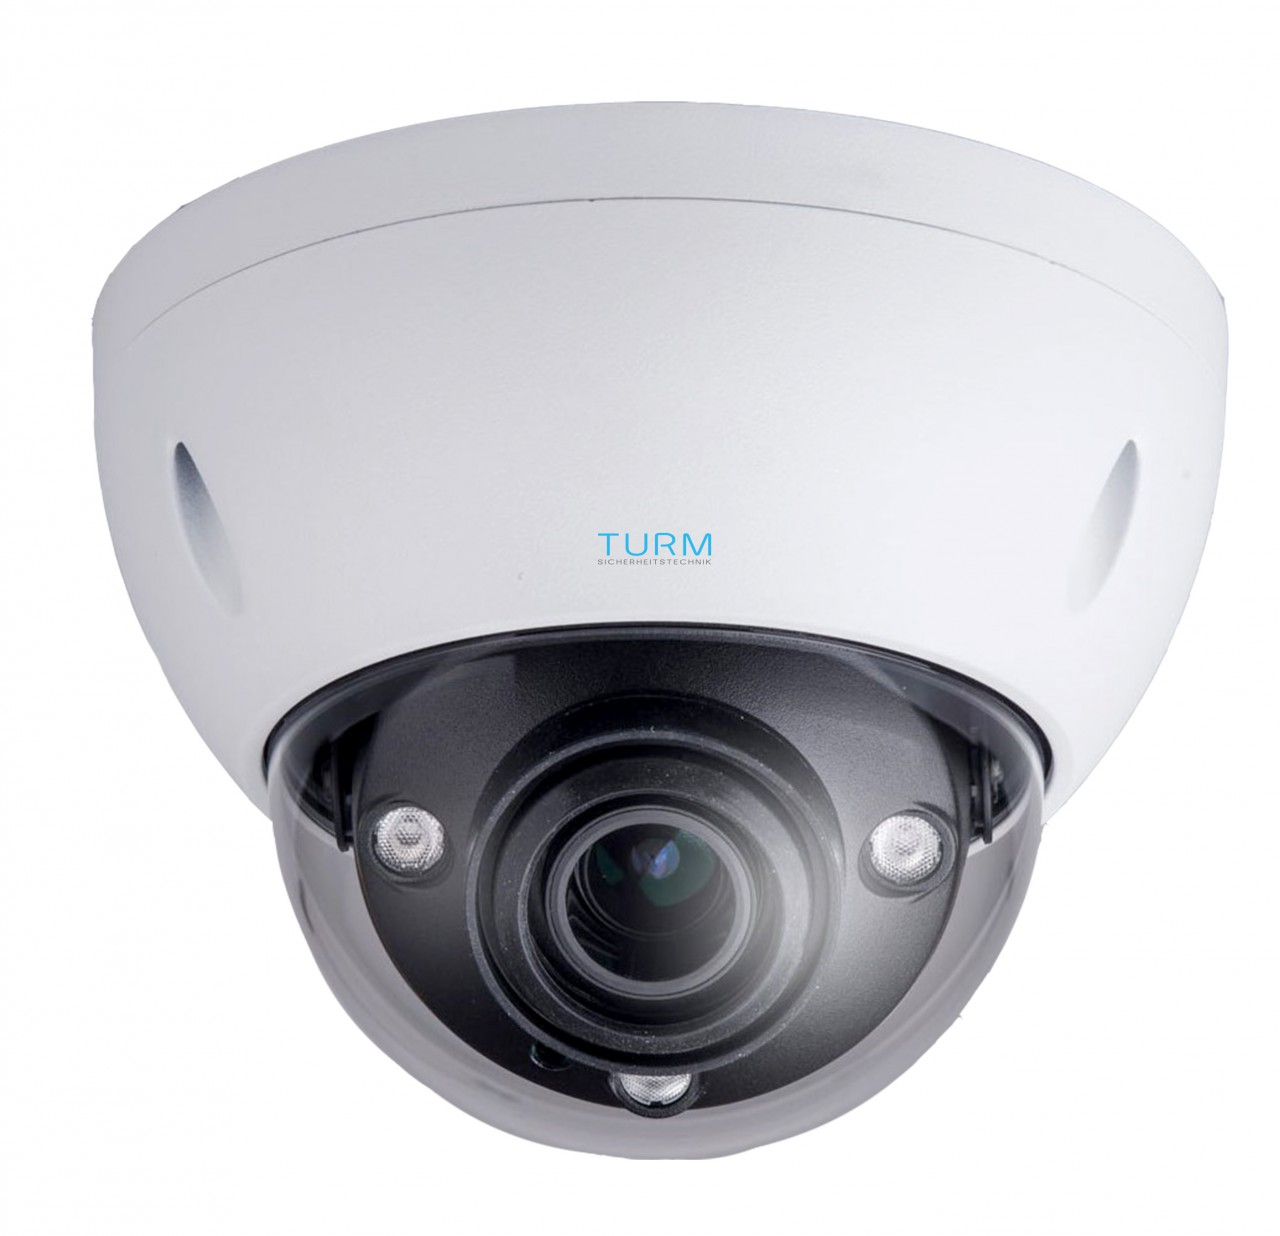 TURM IP Ultra 2 MP Dome Kamera, H.265, WDR, Micro SD bis 128GB, intelligente Videoanalyse: Gesichtse